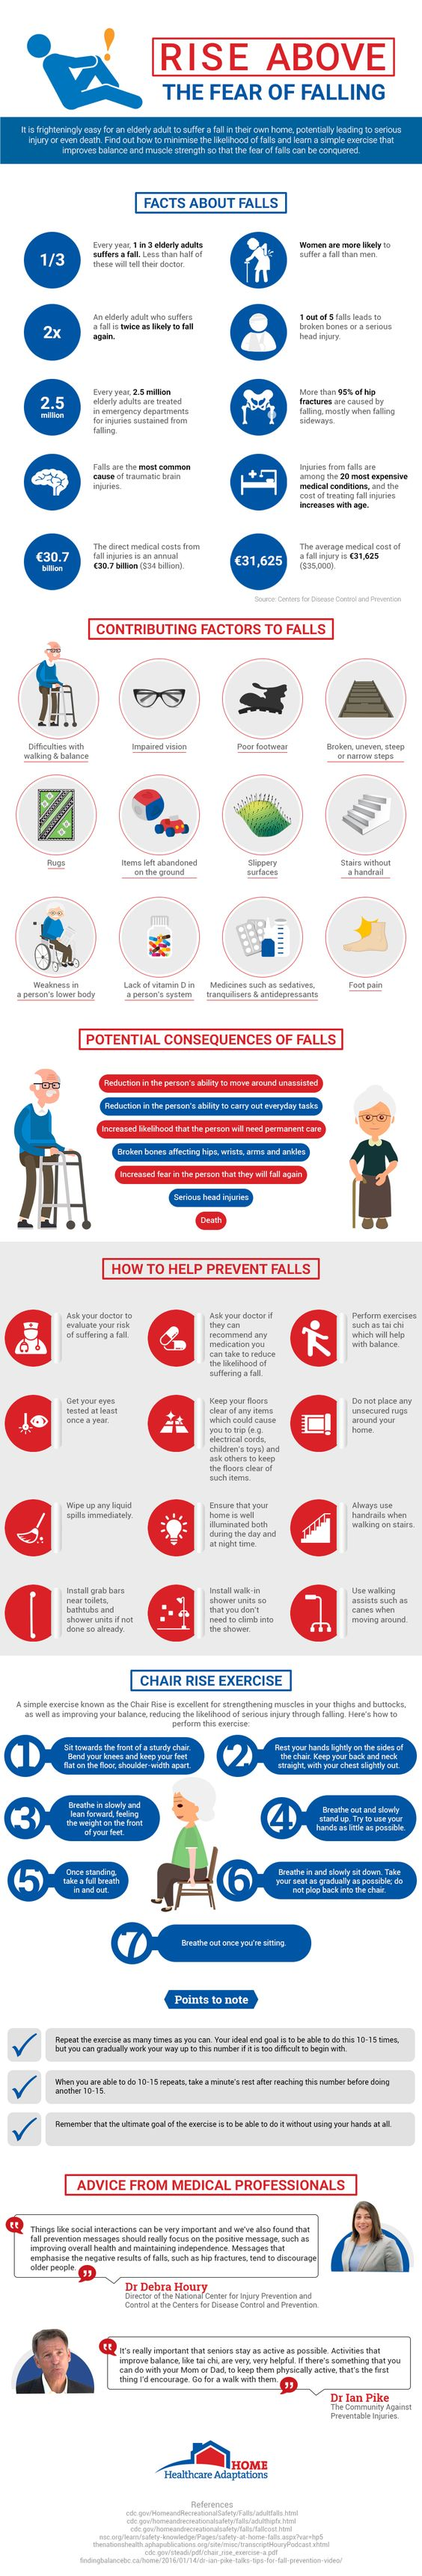 rise-above-the-fear-of-falling-infographic